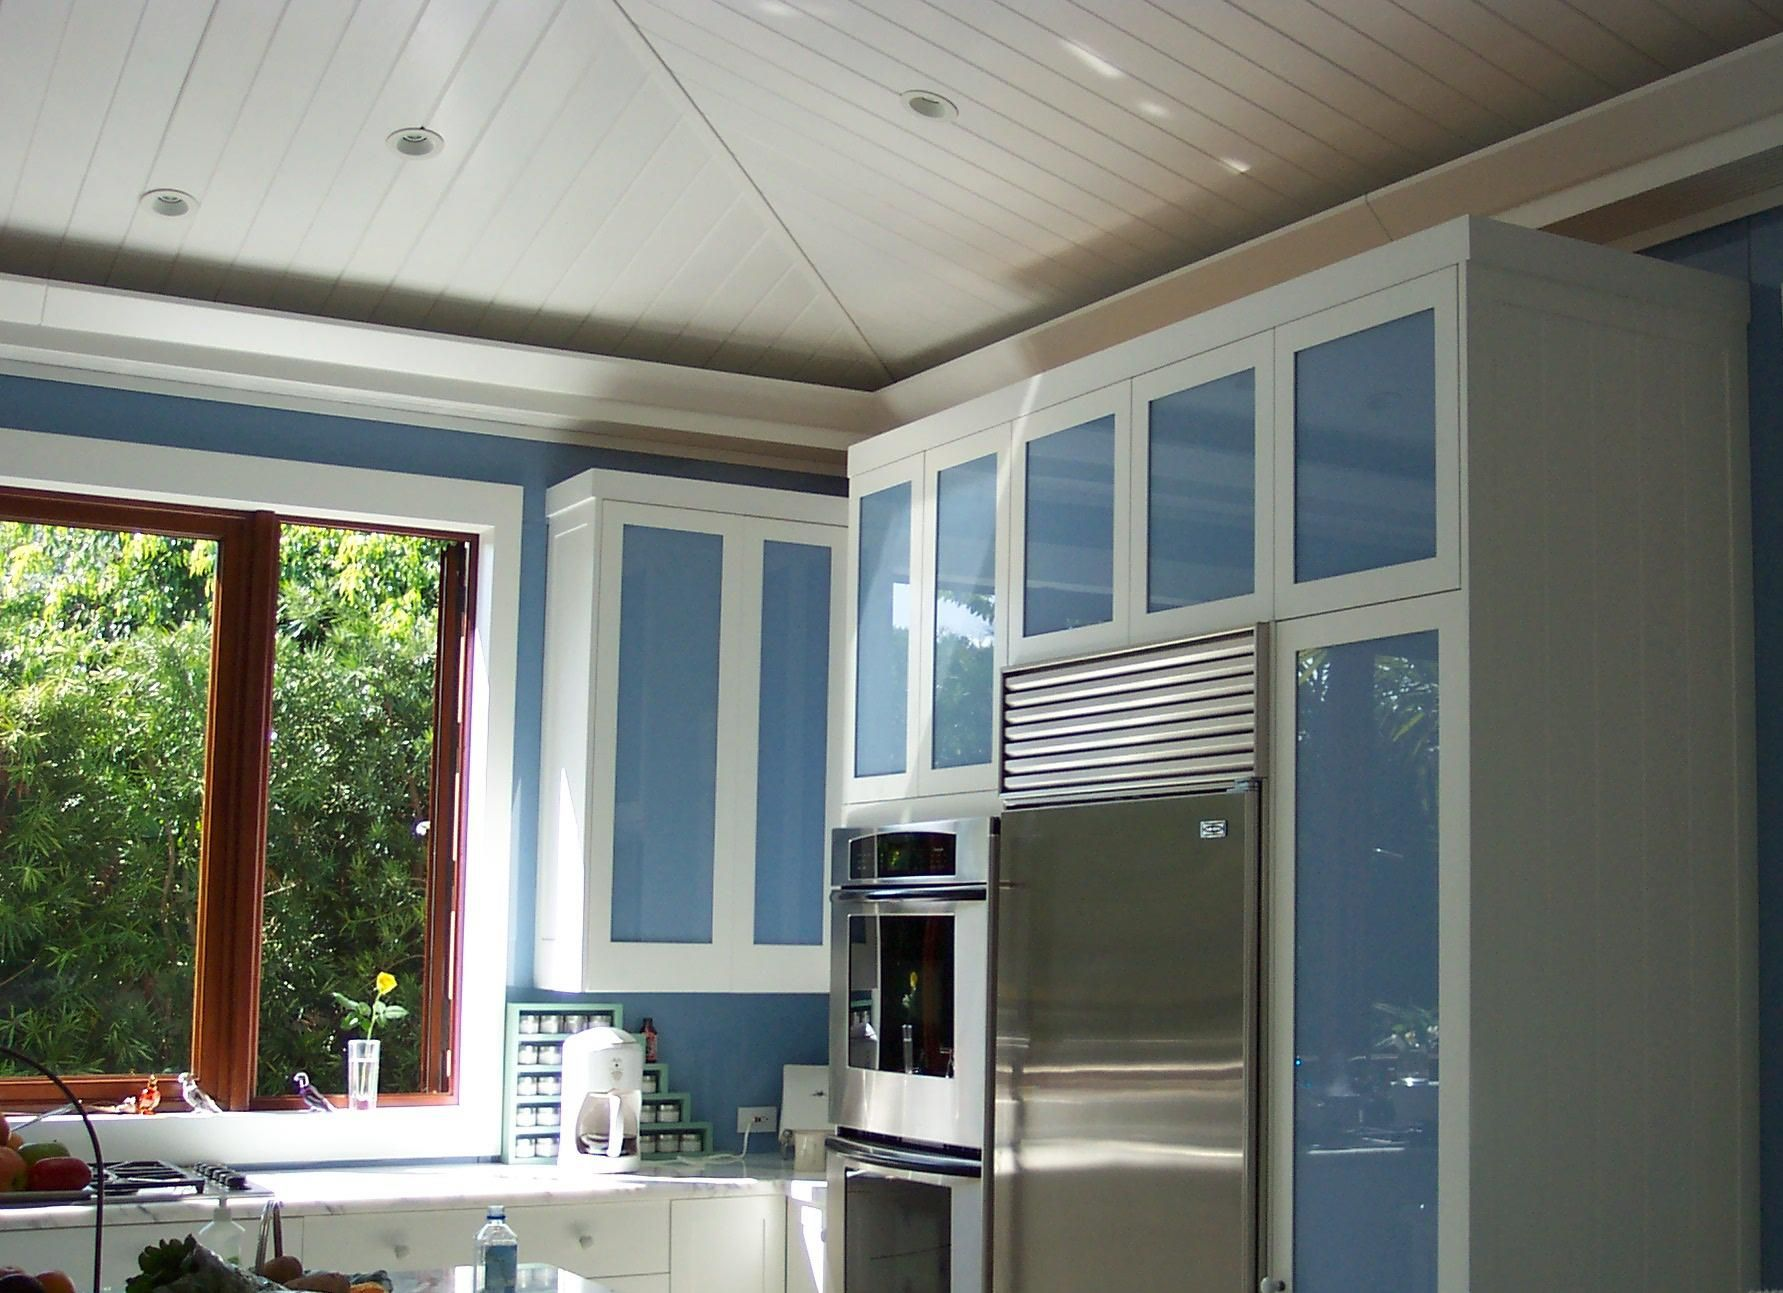 Baby blue back painted glass | back painted glass | Pinterest | Baby ...